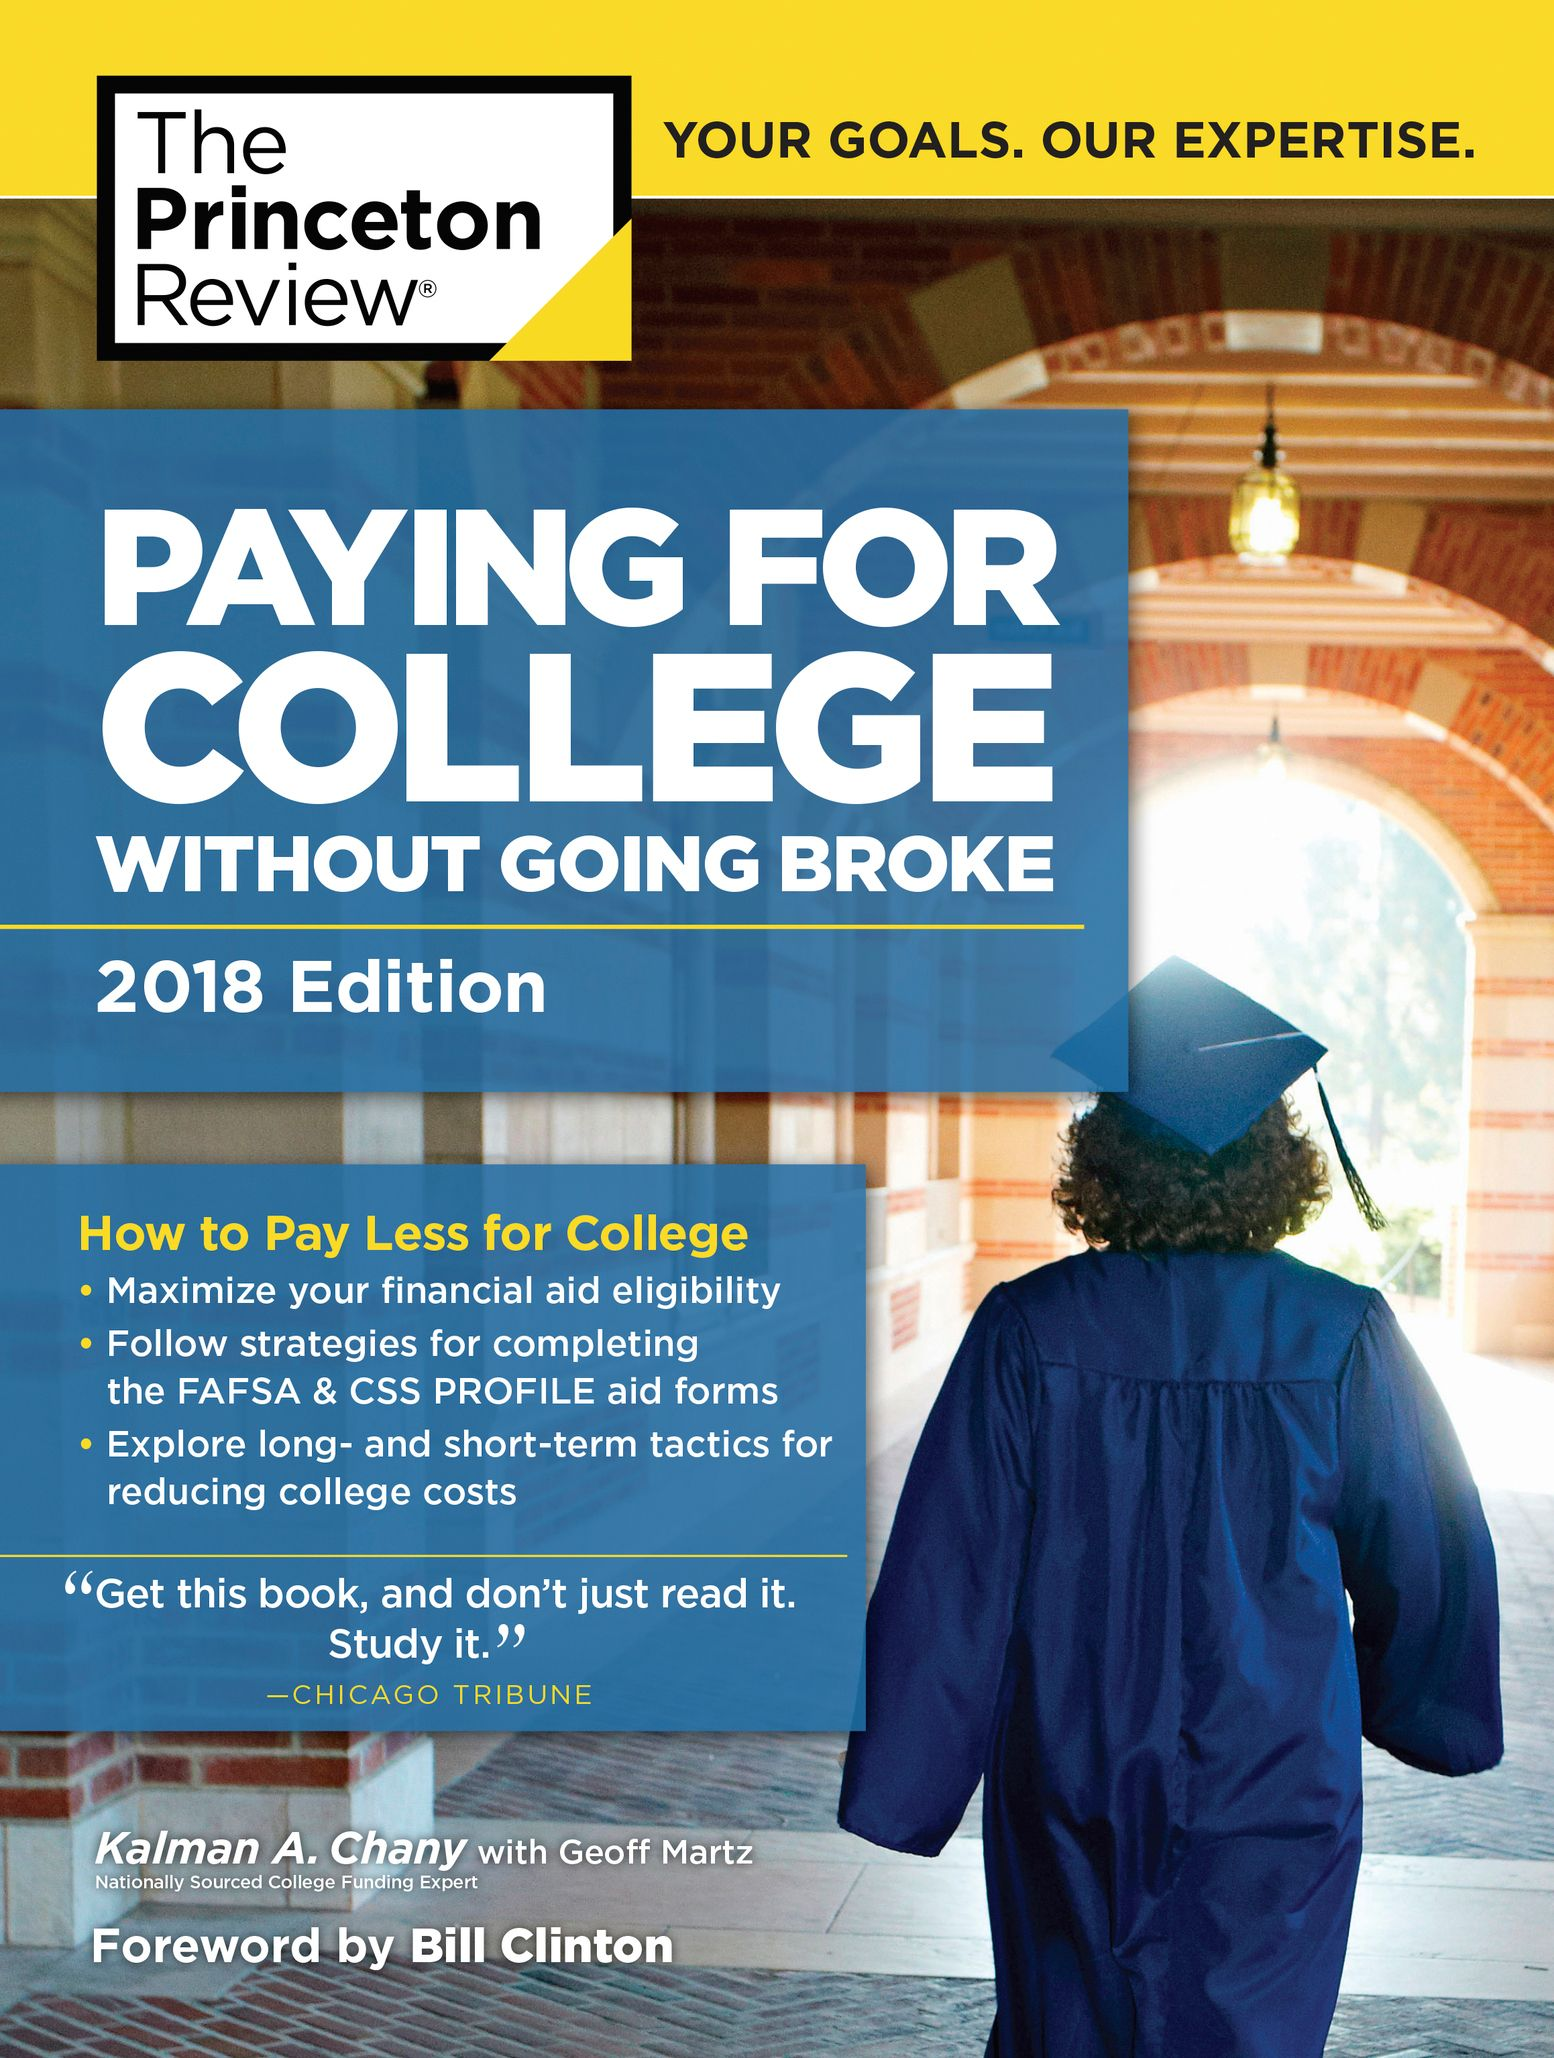 Paying for College Without Going Broke, 2018 1st Edition Pdf Free Download